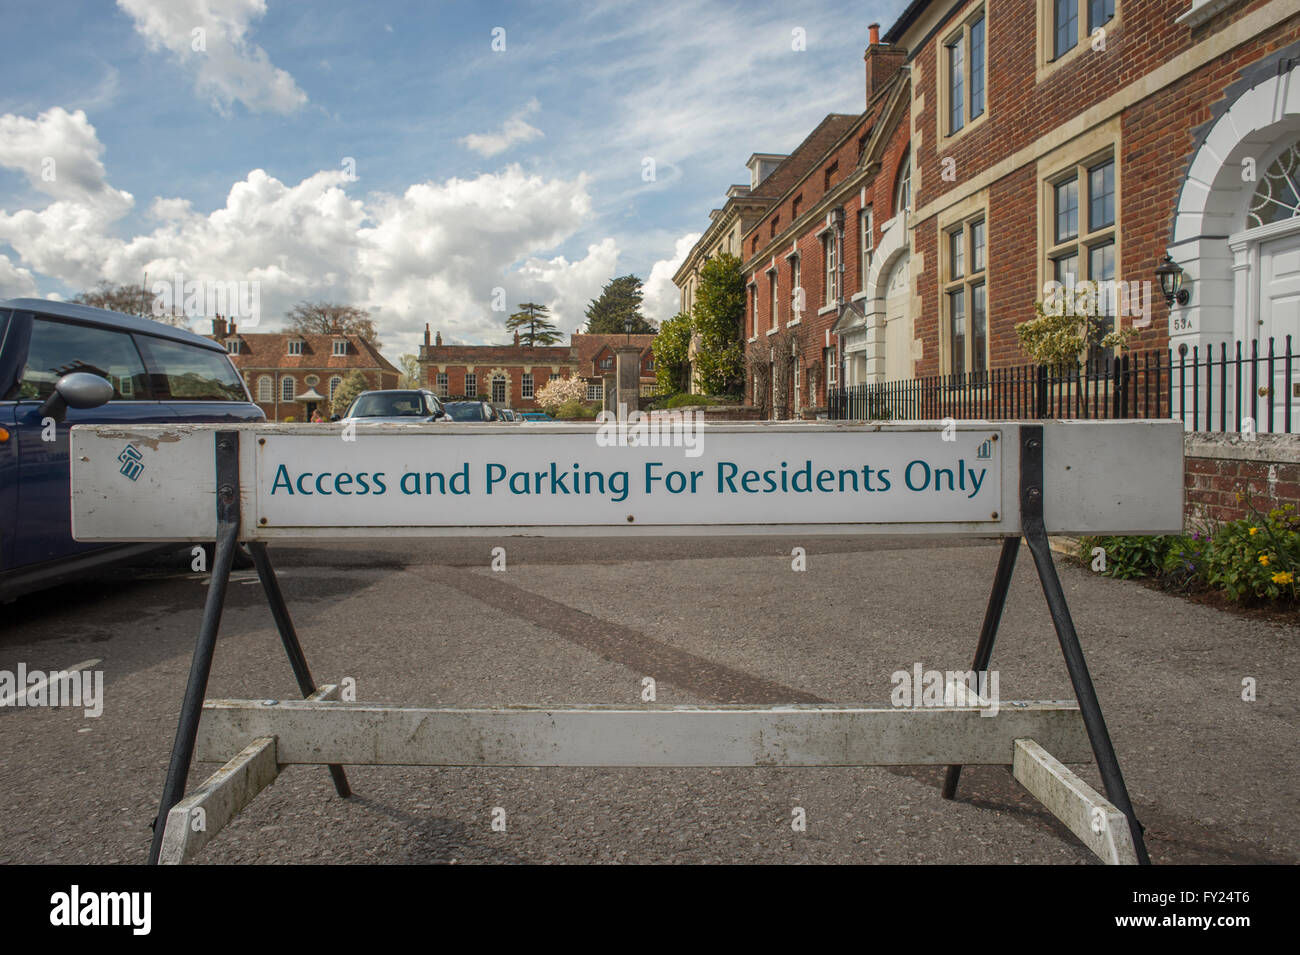 Road barrier, with access and parking for residents only, Salisbury, Wilthsire. - Stock Image